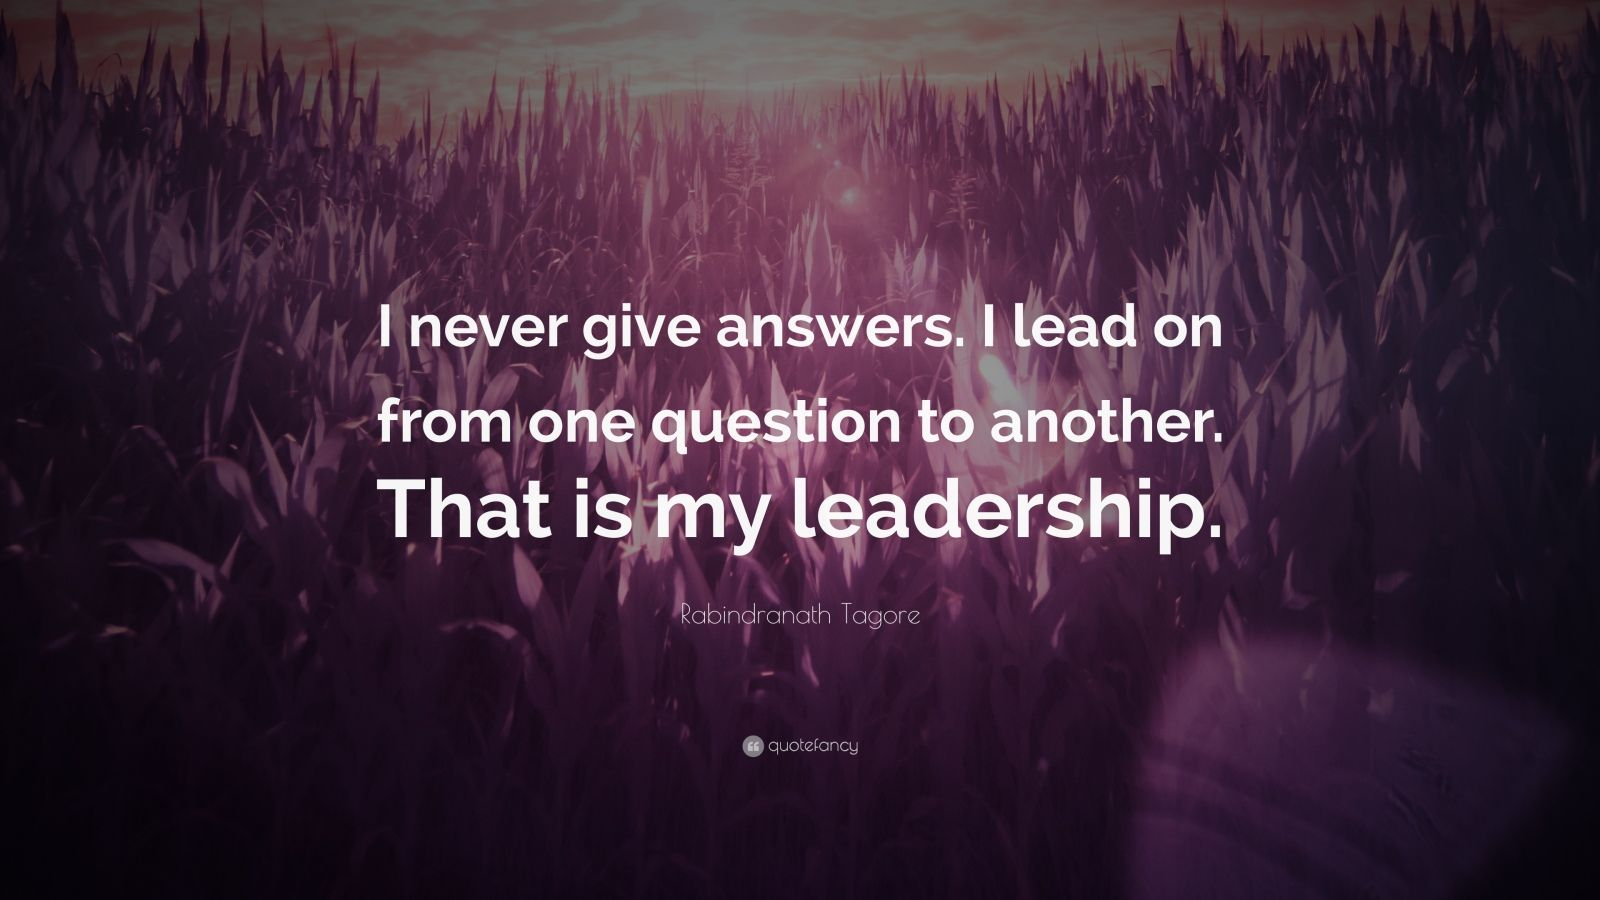 """Rabindranath Tagore Quote: """"I never give answers. I lead on from one question to another. That is my leadership."""""""